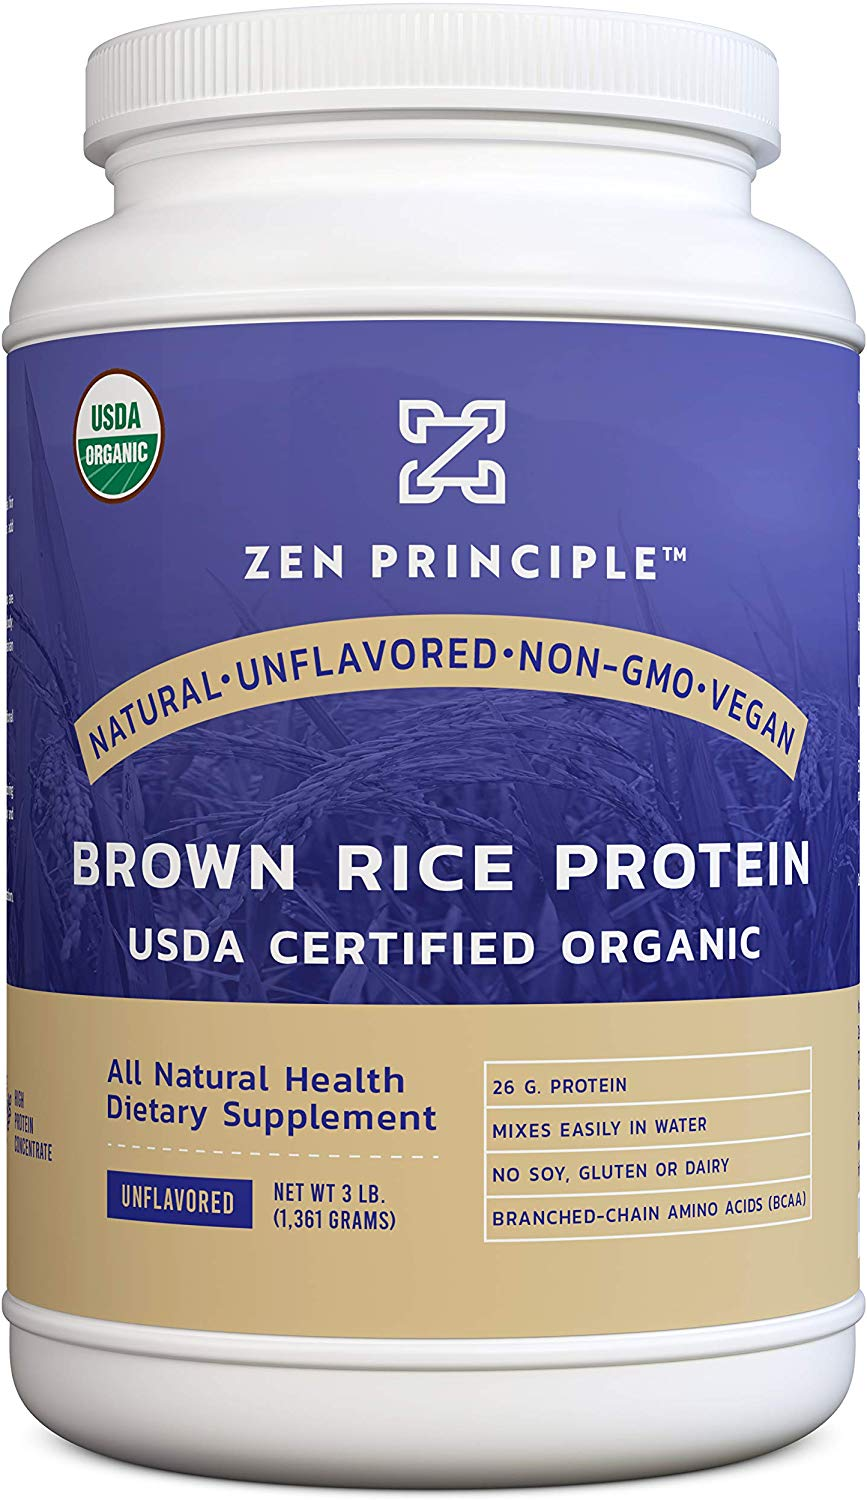 Zen Principle Brown Rice Protein